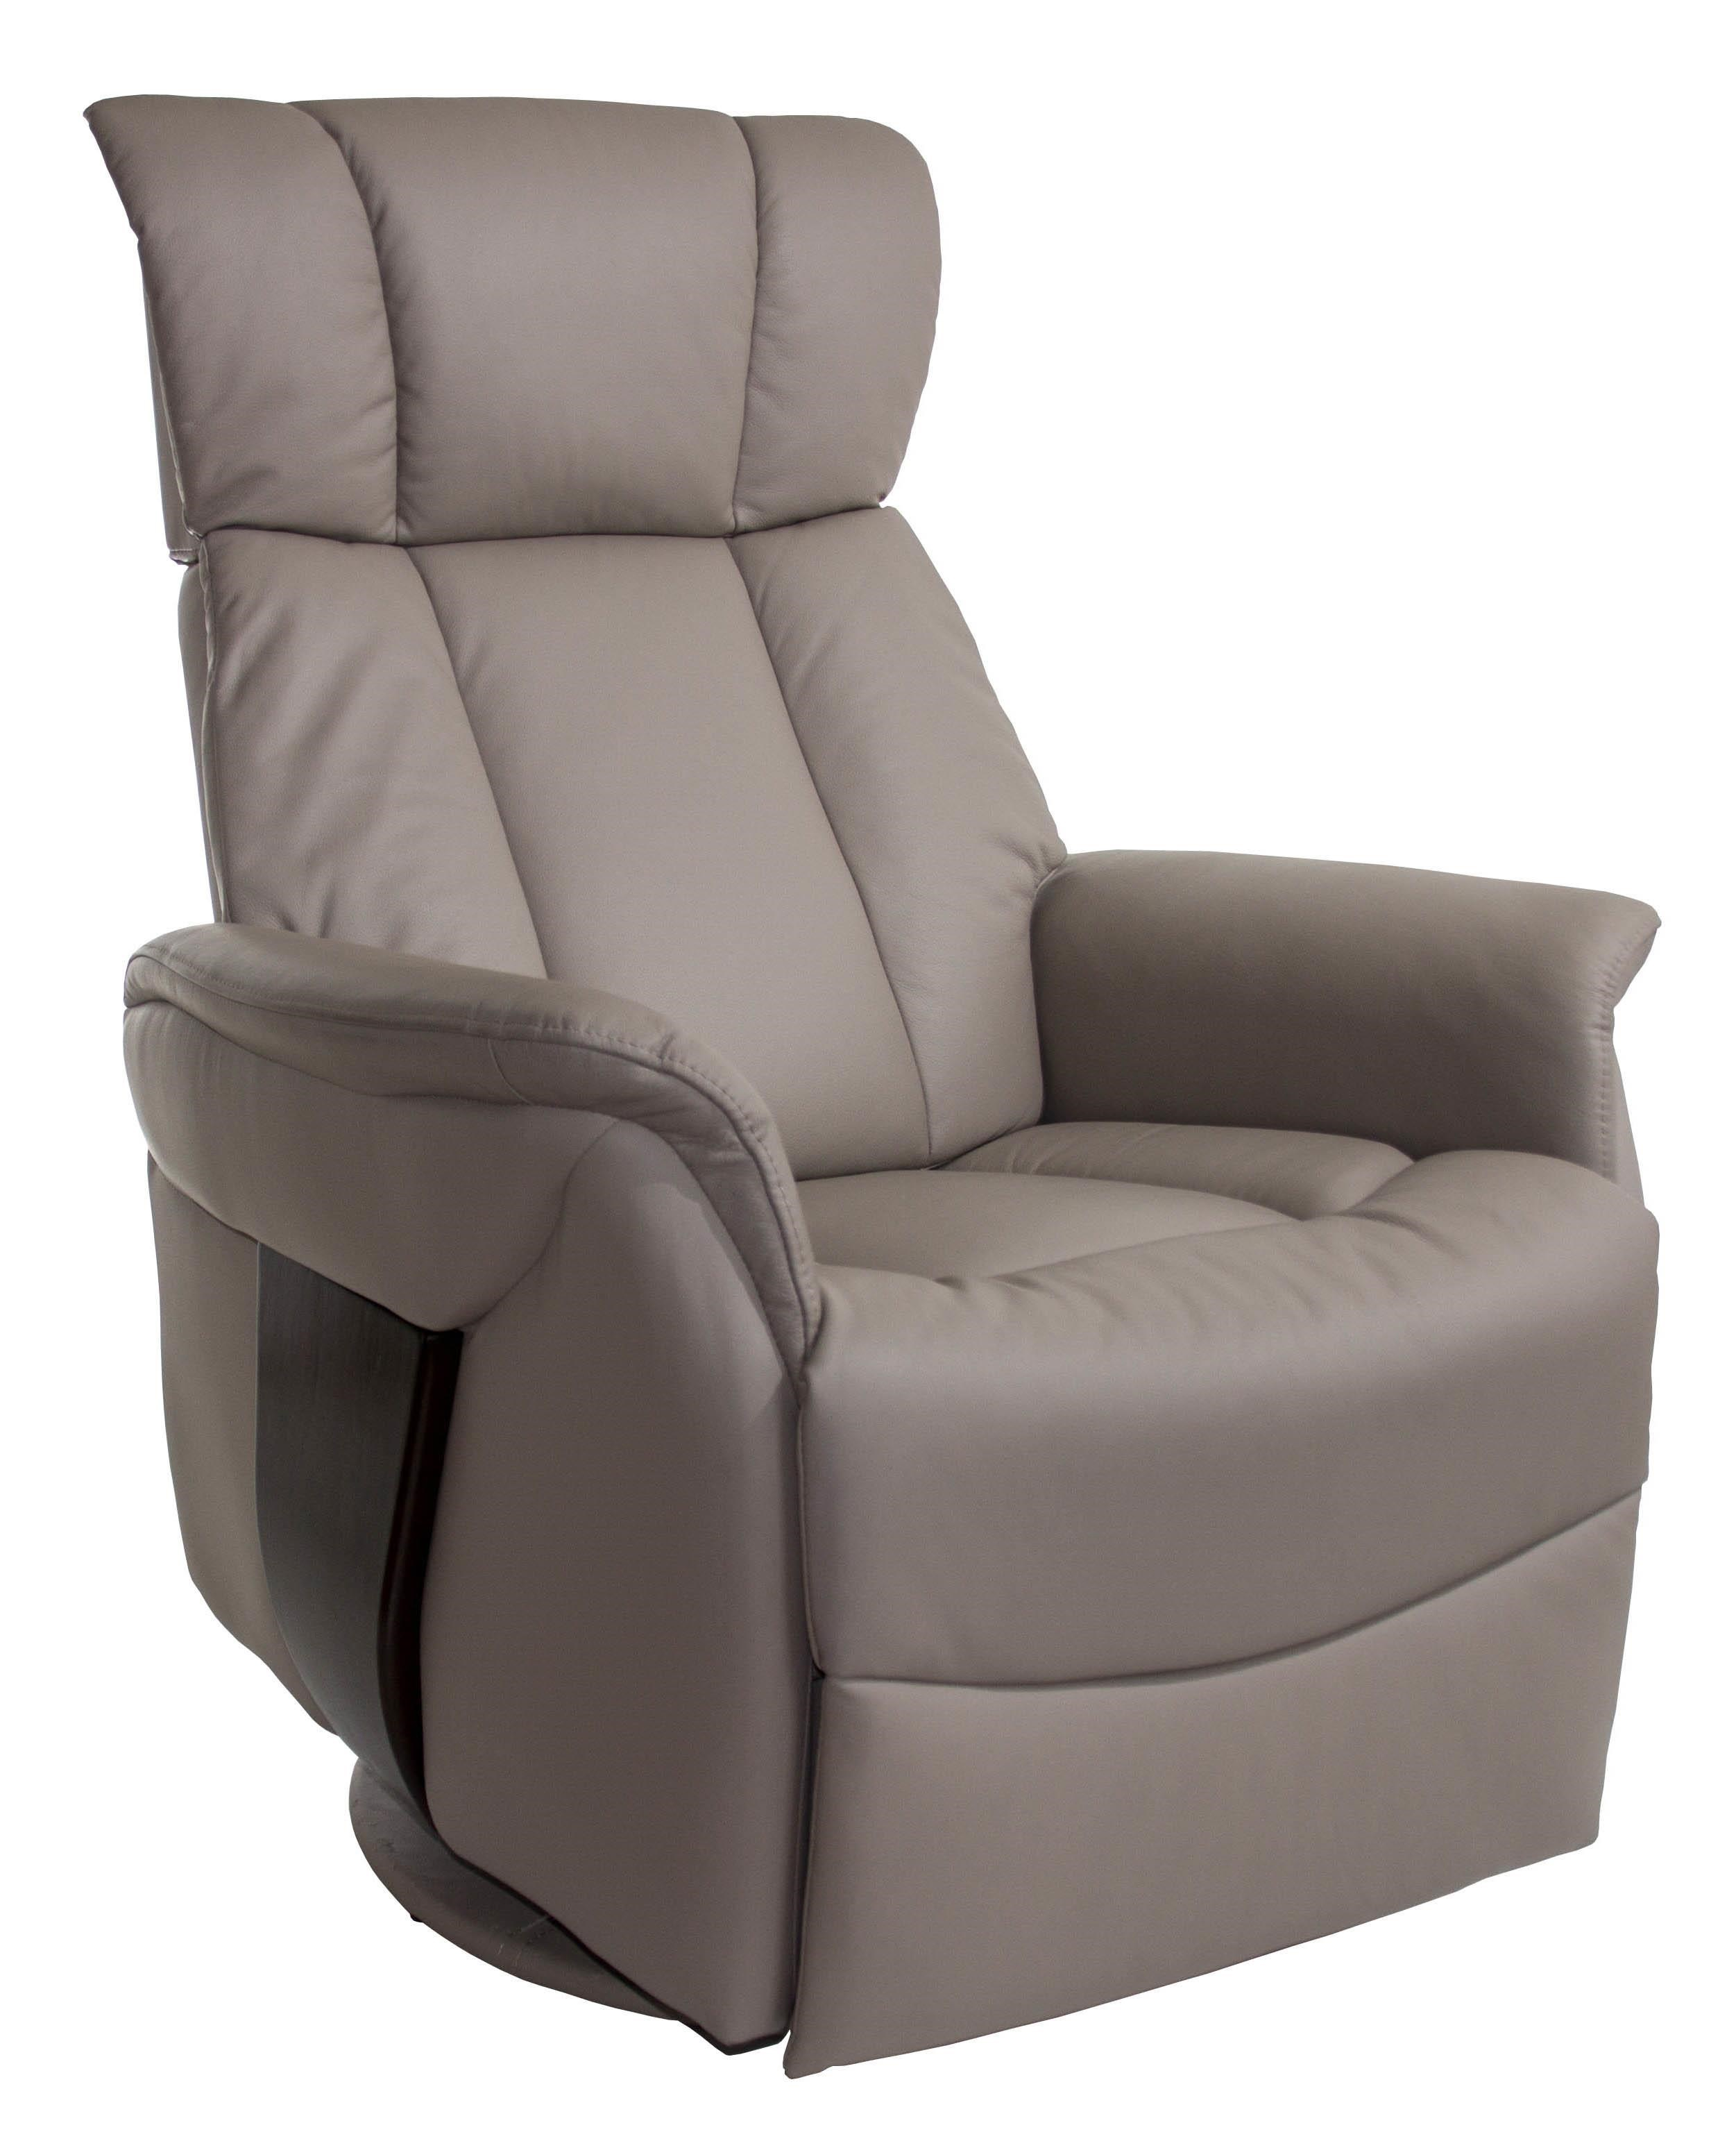 Mac Motion Chairs Oslo CollectionVardo Power Swivel Glider Recliner ...